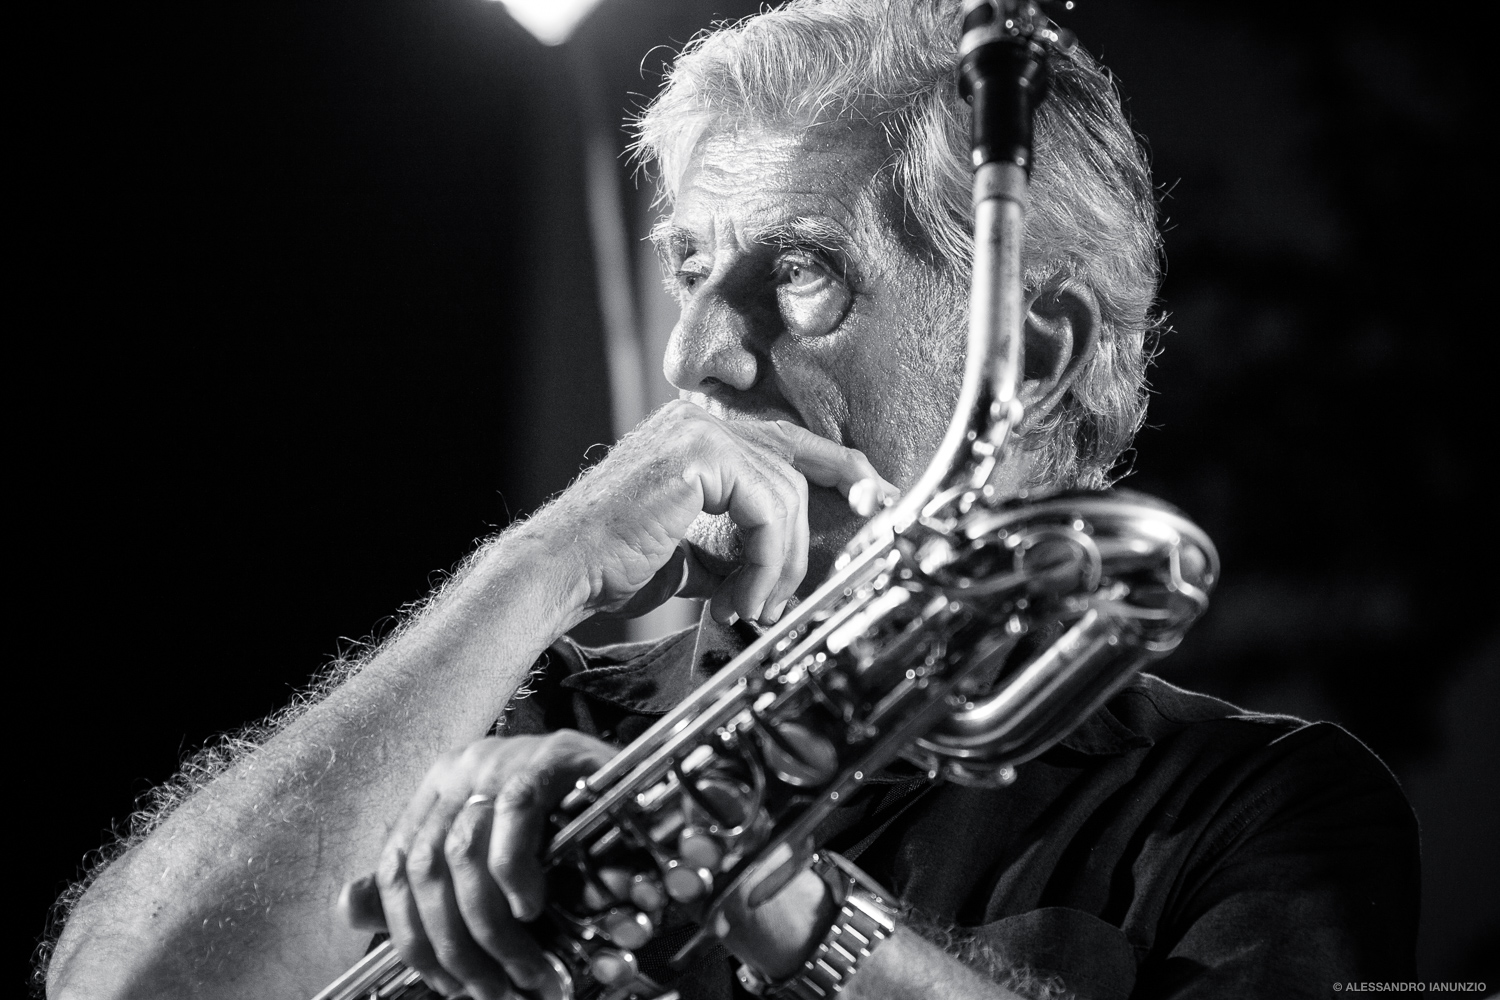 Old man and Sax